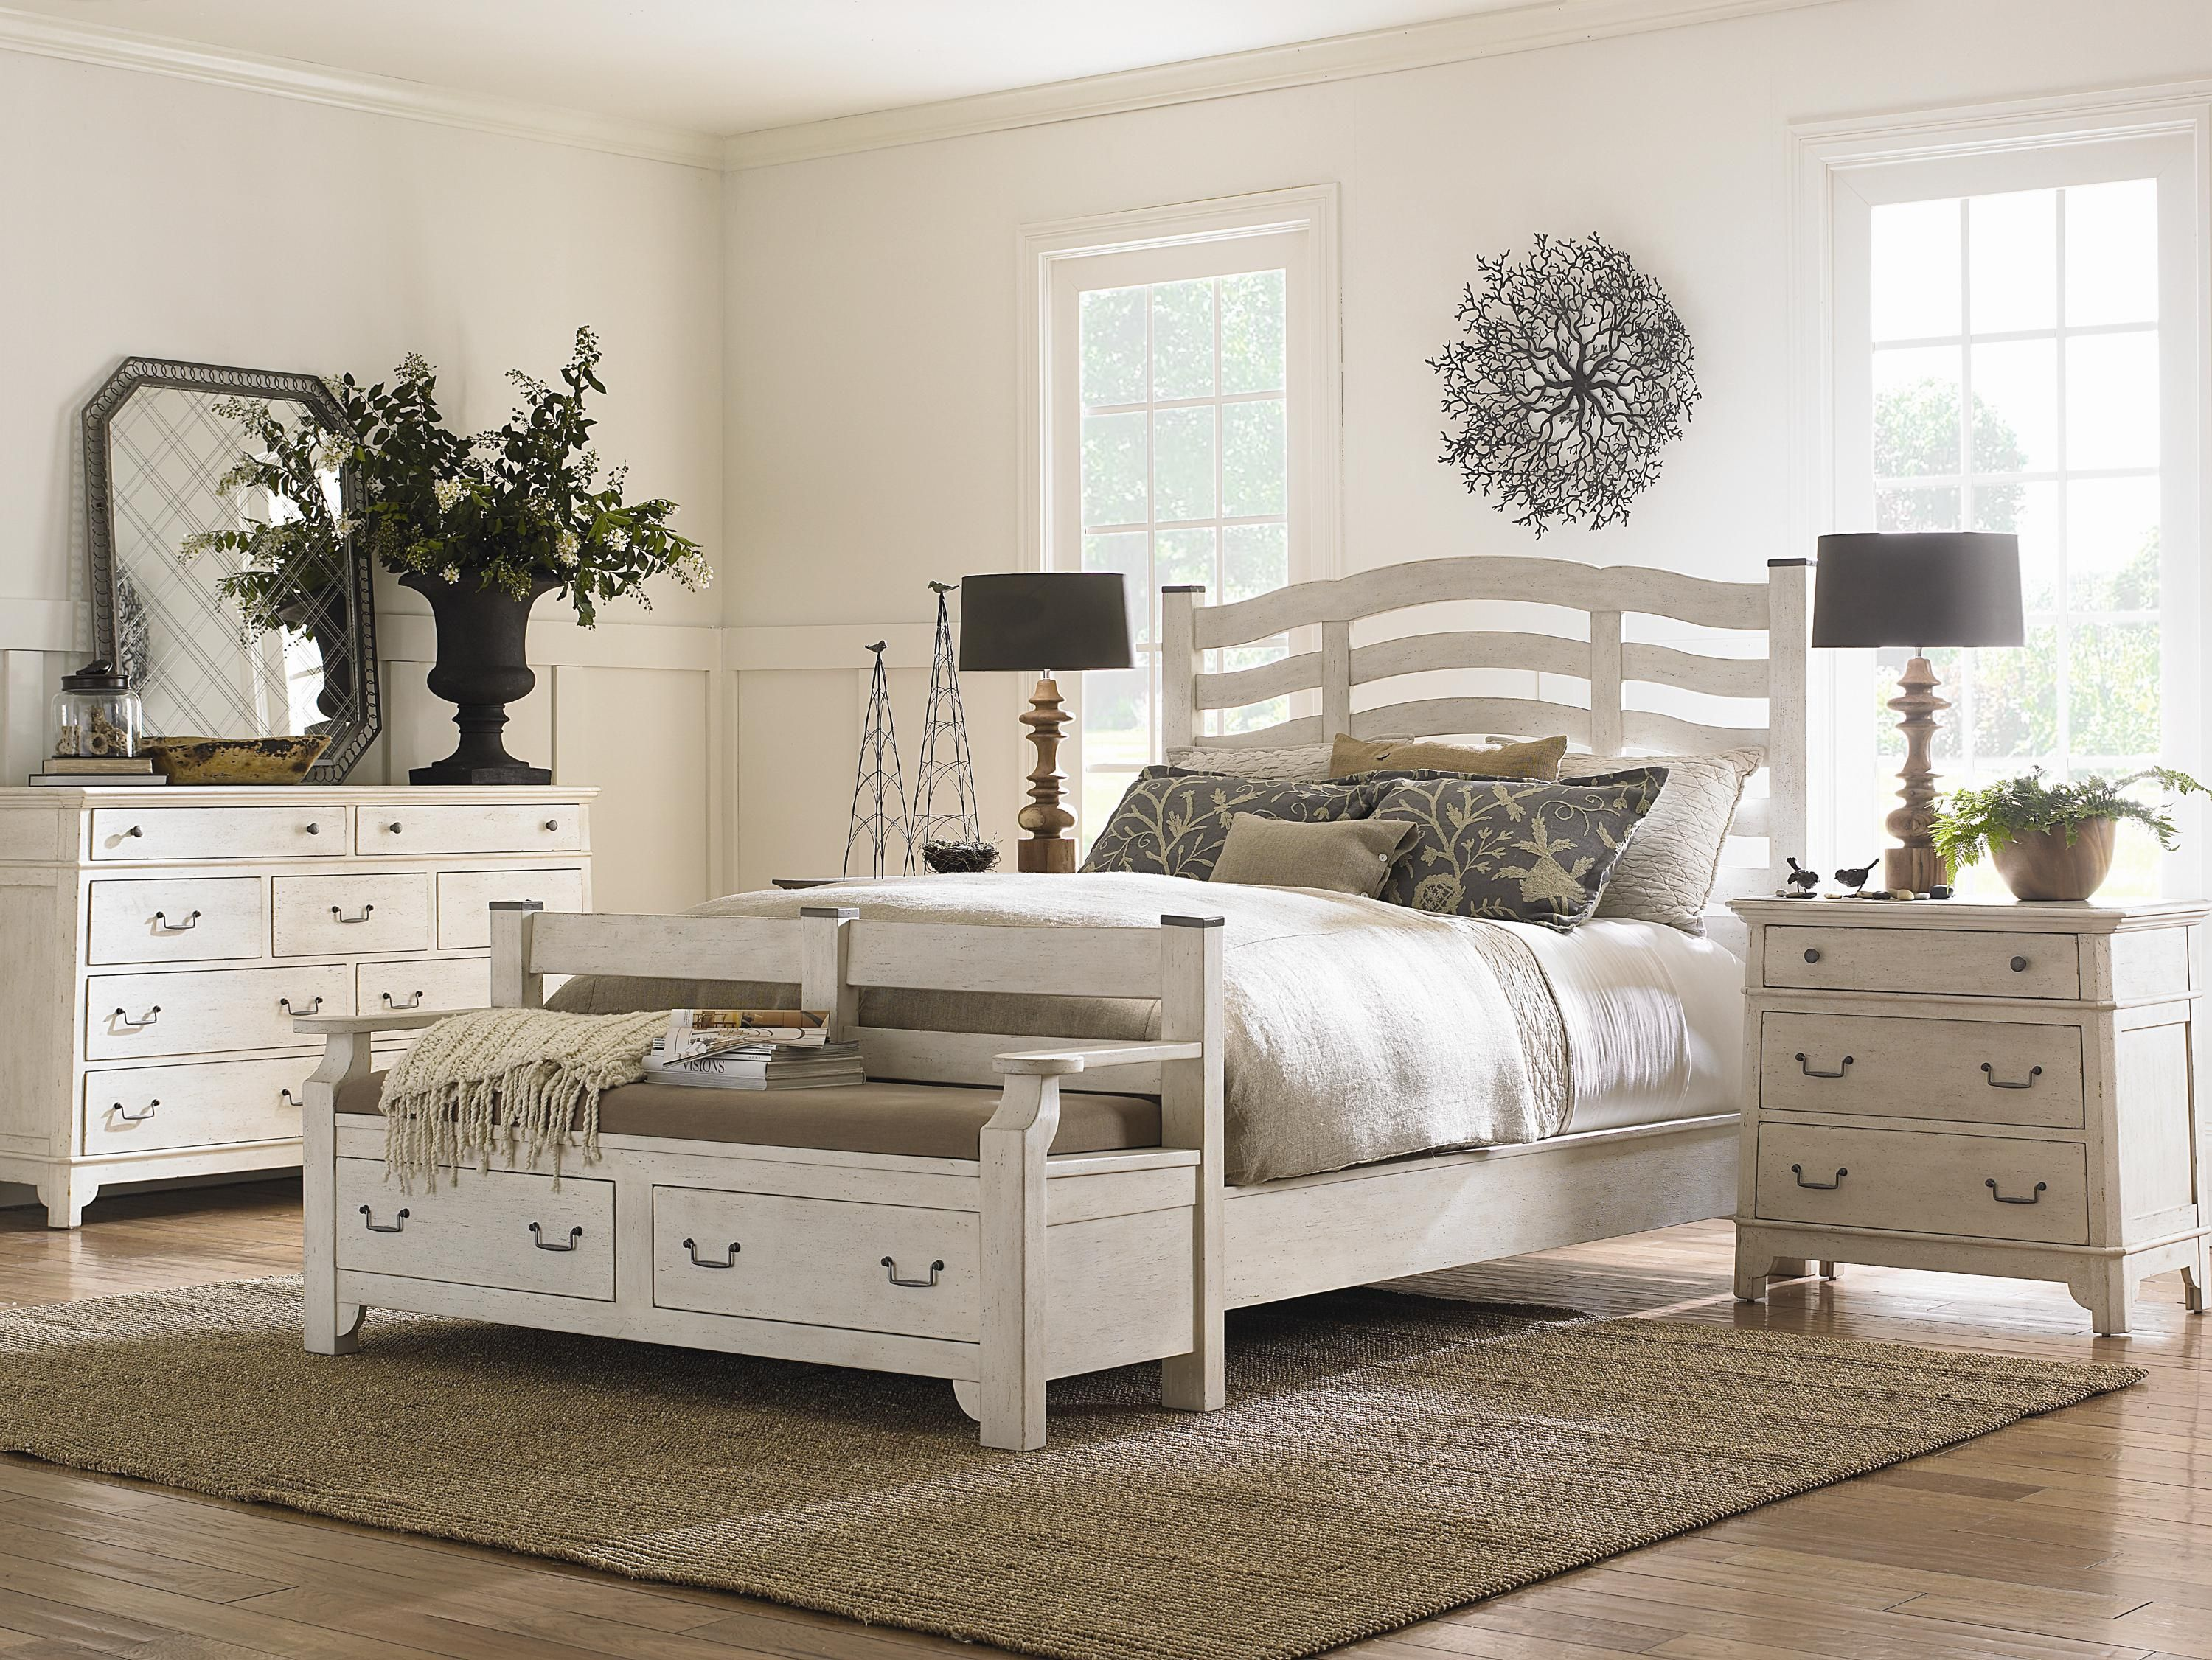 Outside In 855 Weathered White by Schnadig Reeds Furniture